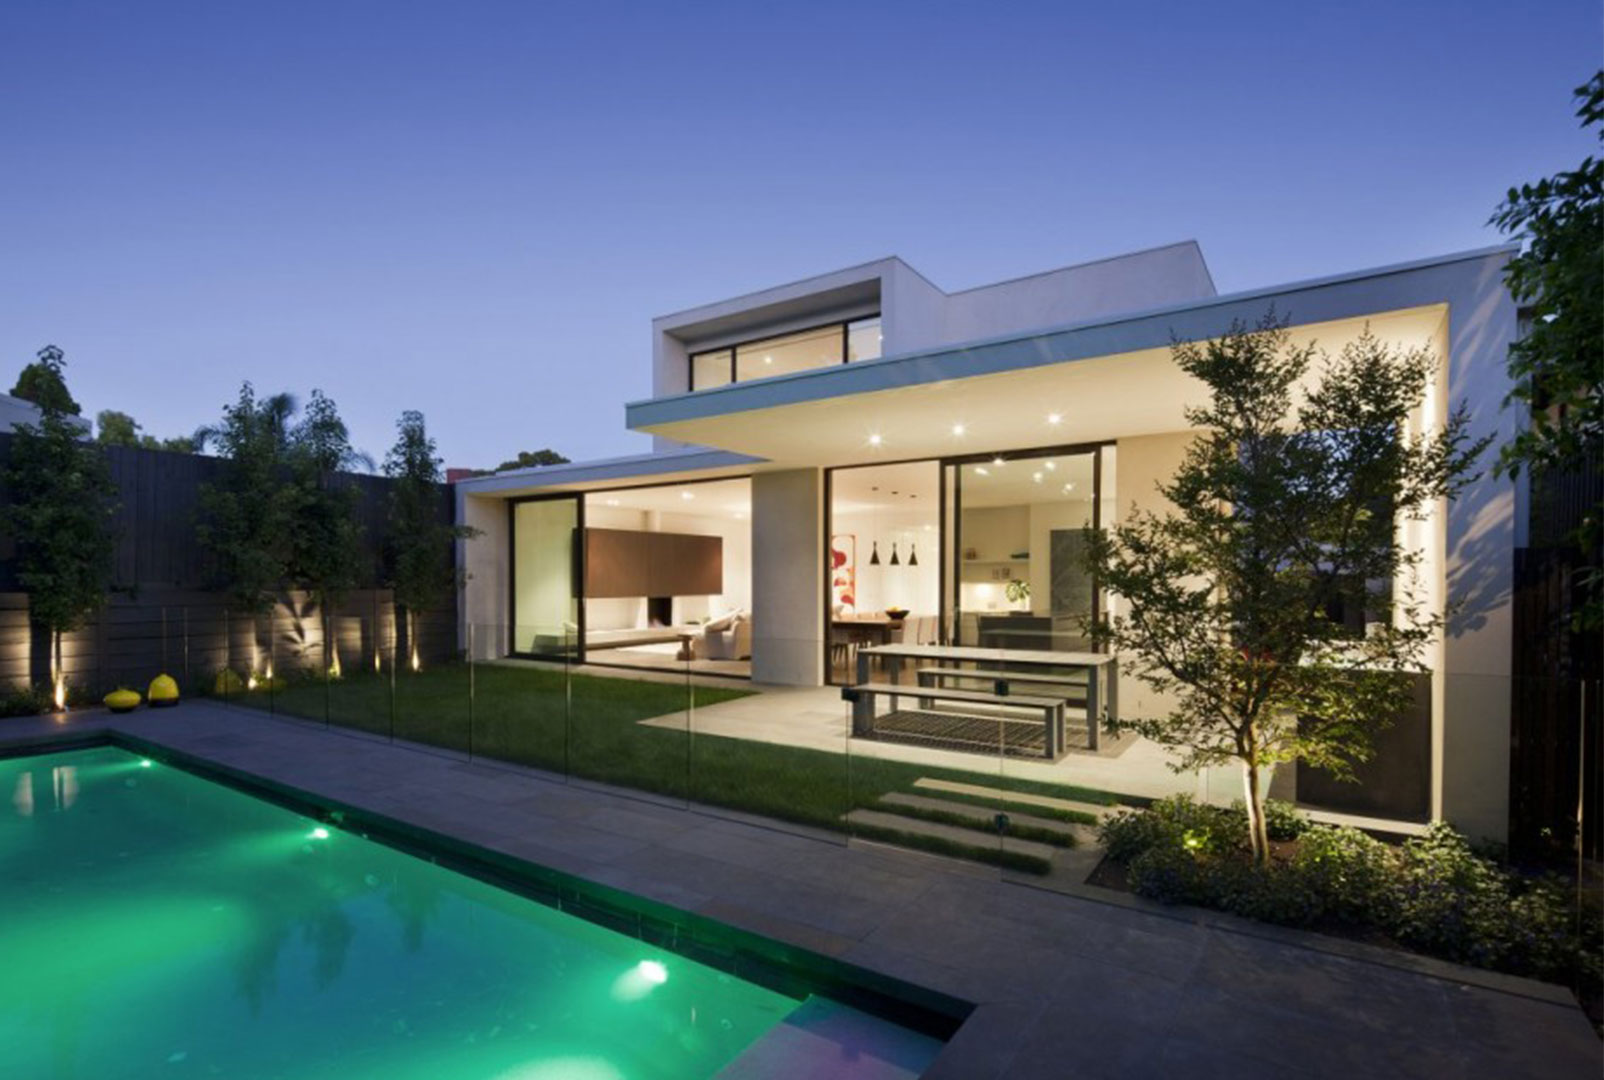 Luxury houses design ideas 2013 foxley and co for Best house designs melbourne